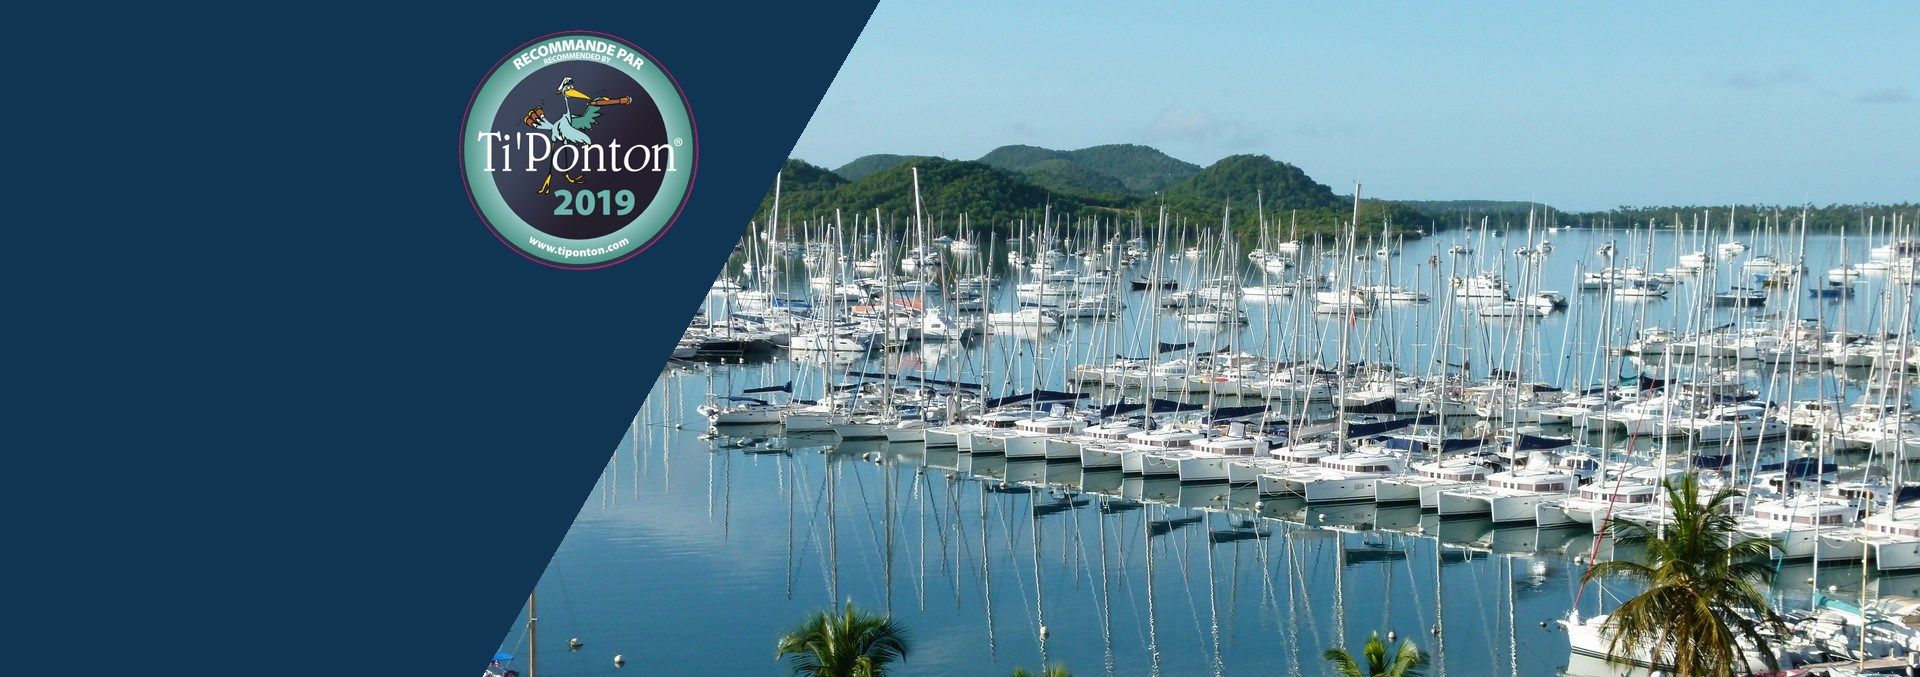 TI'Ponton - Martinique, Guadeloupe<br> and St. Lucia boating directory